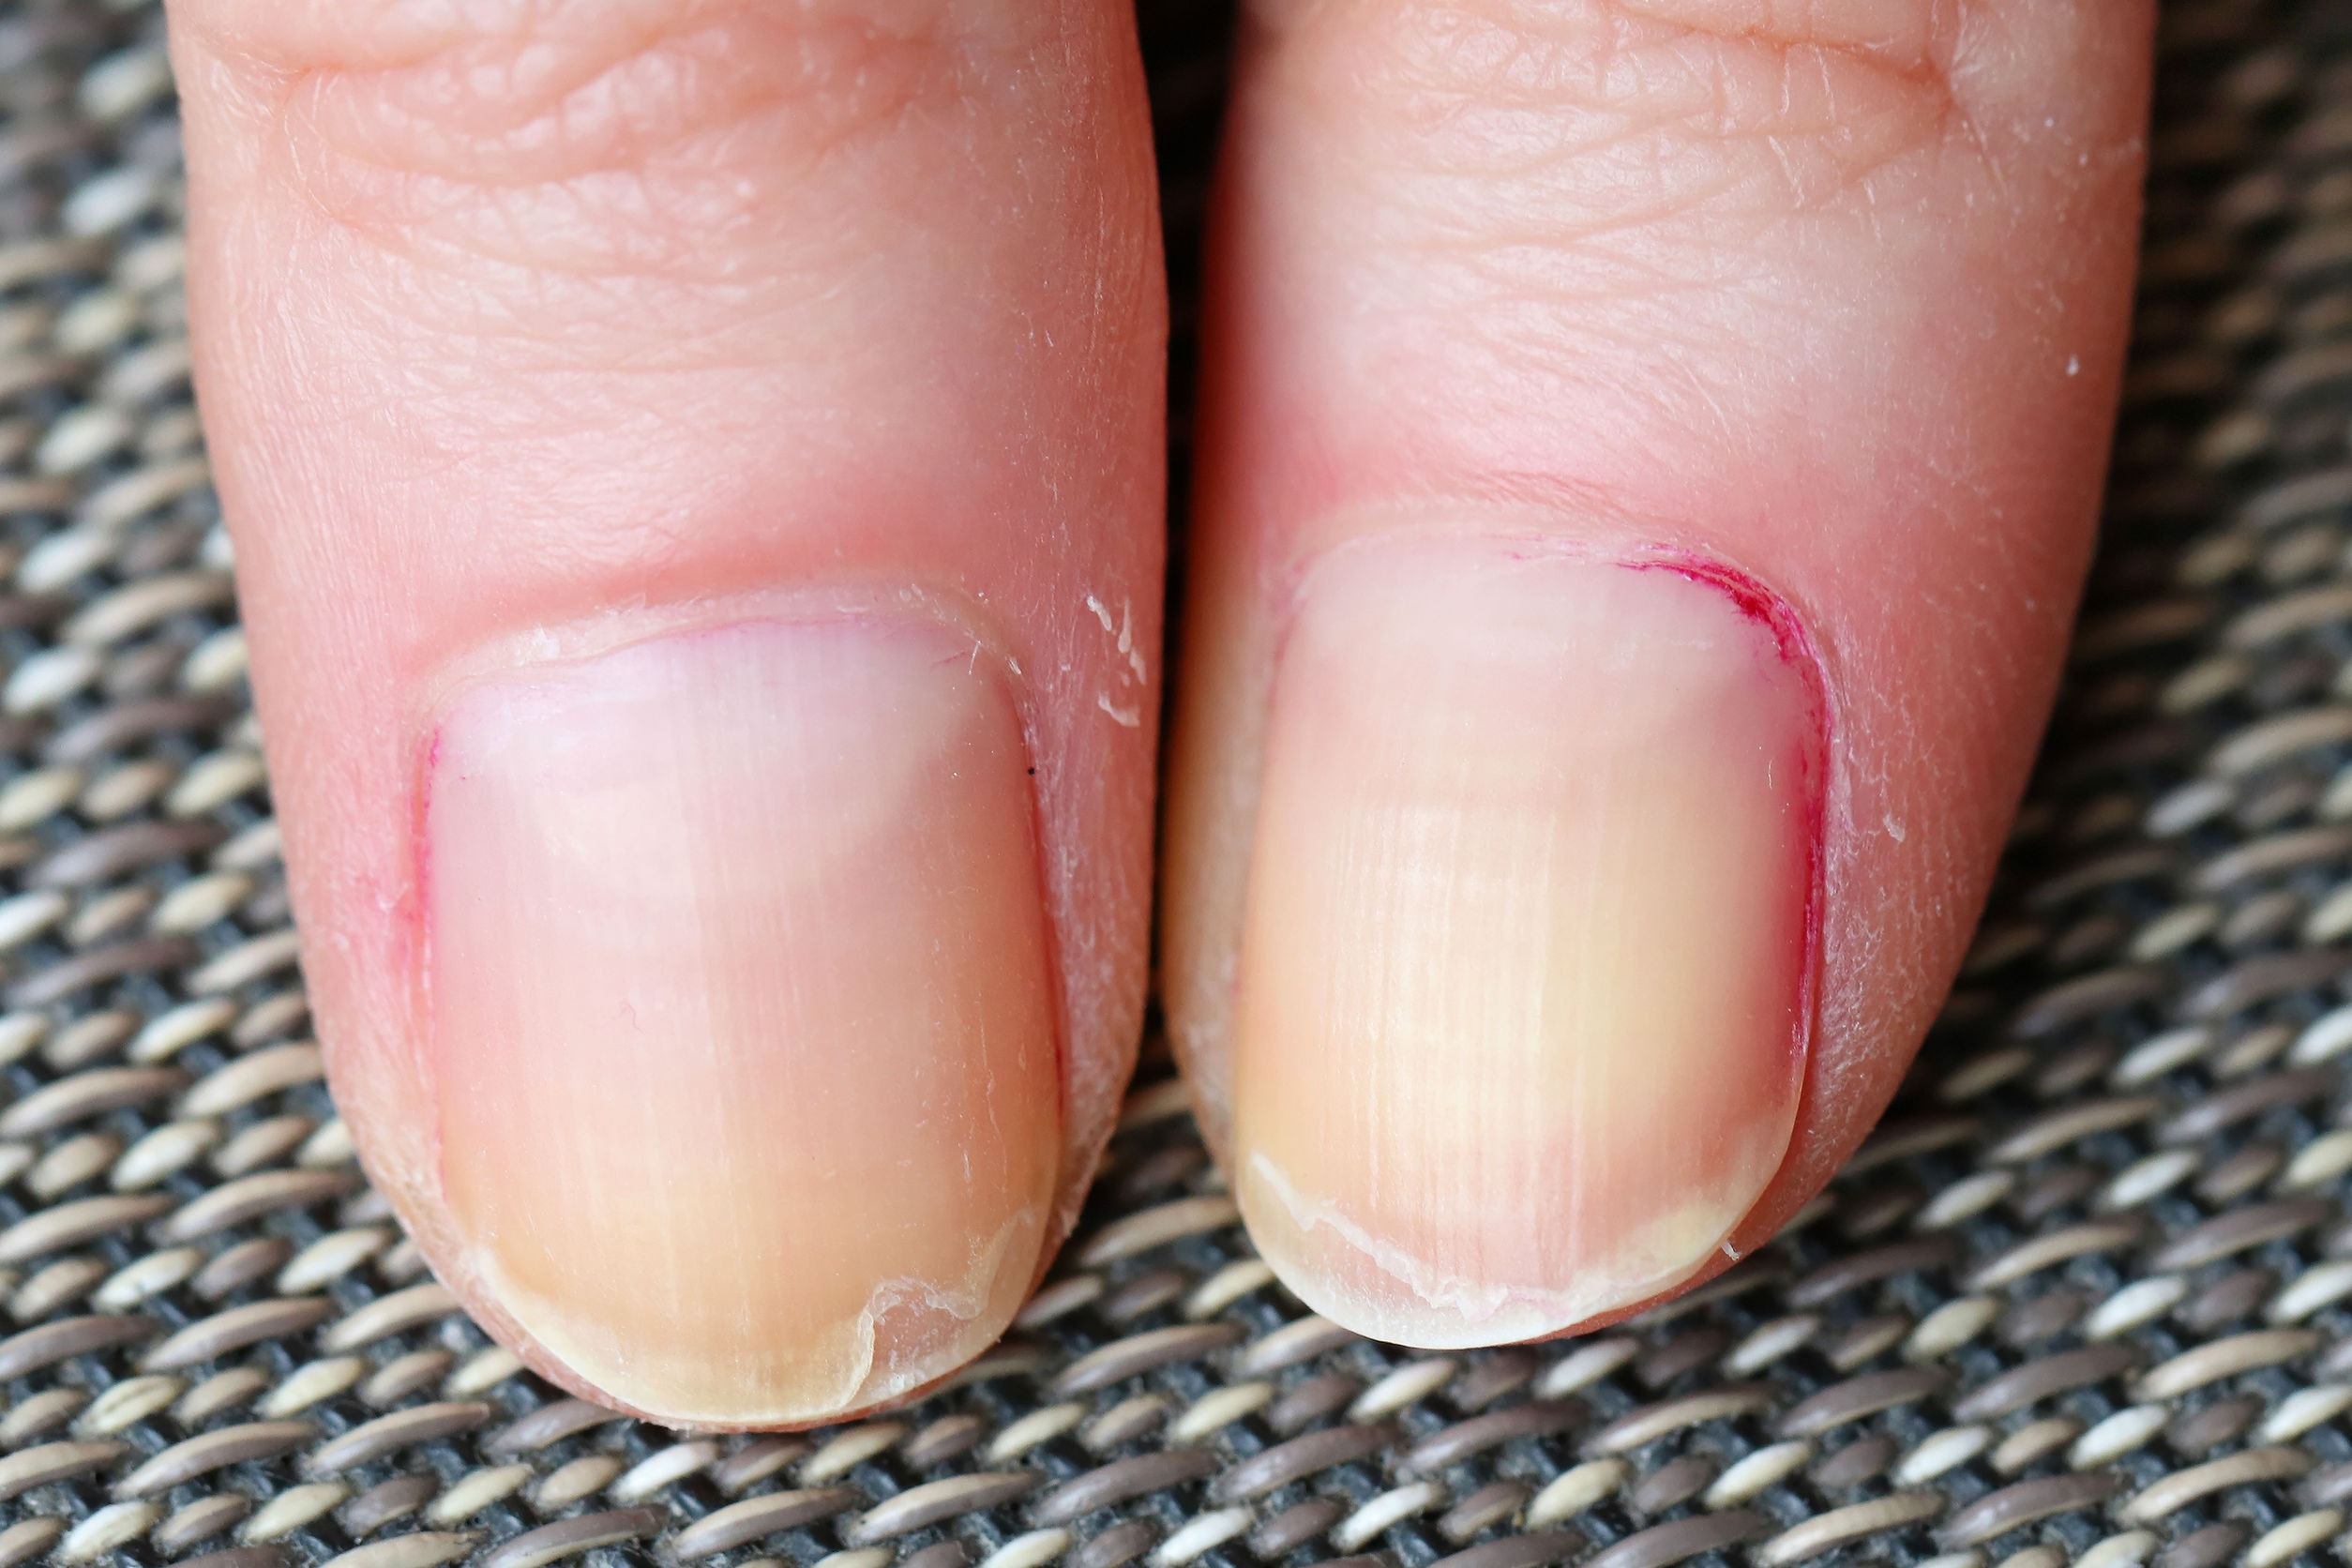 Split/peeling fingernails. These can occur with hypothyroidism, low protein and other conditions associated with gluten intolerance and celiac